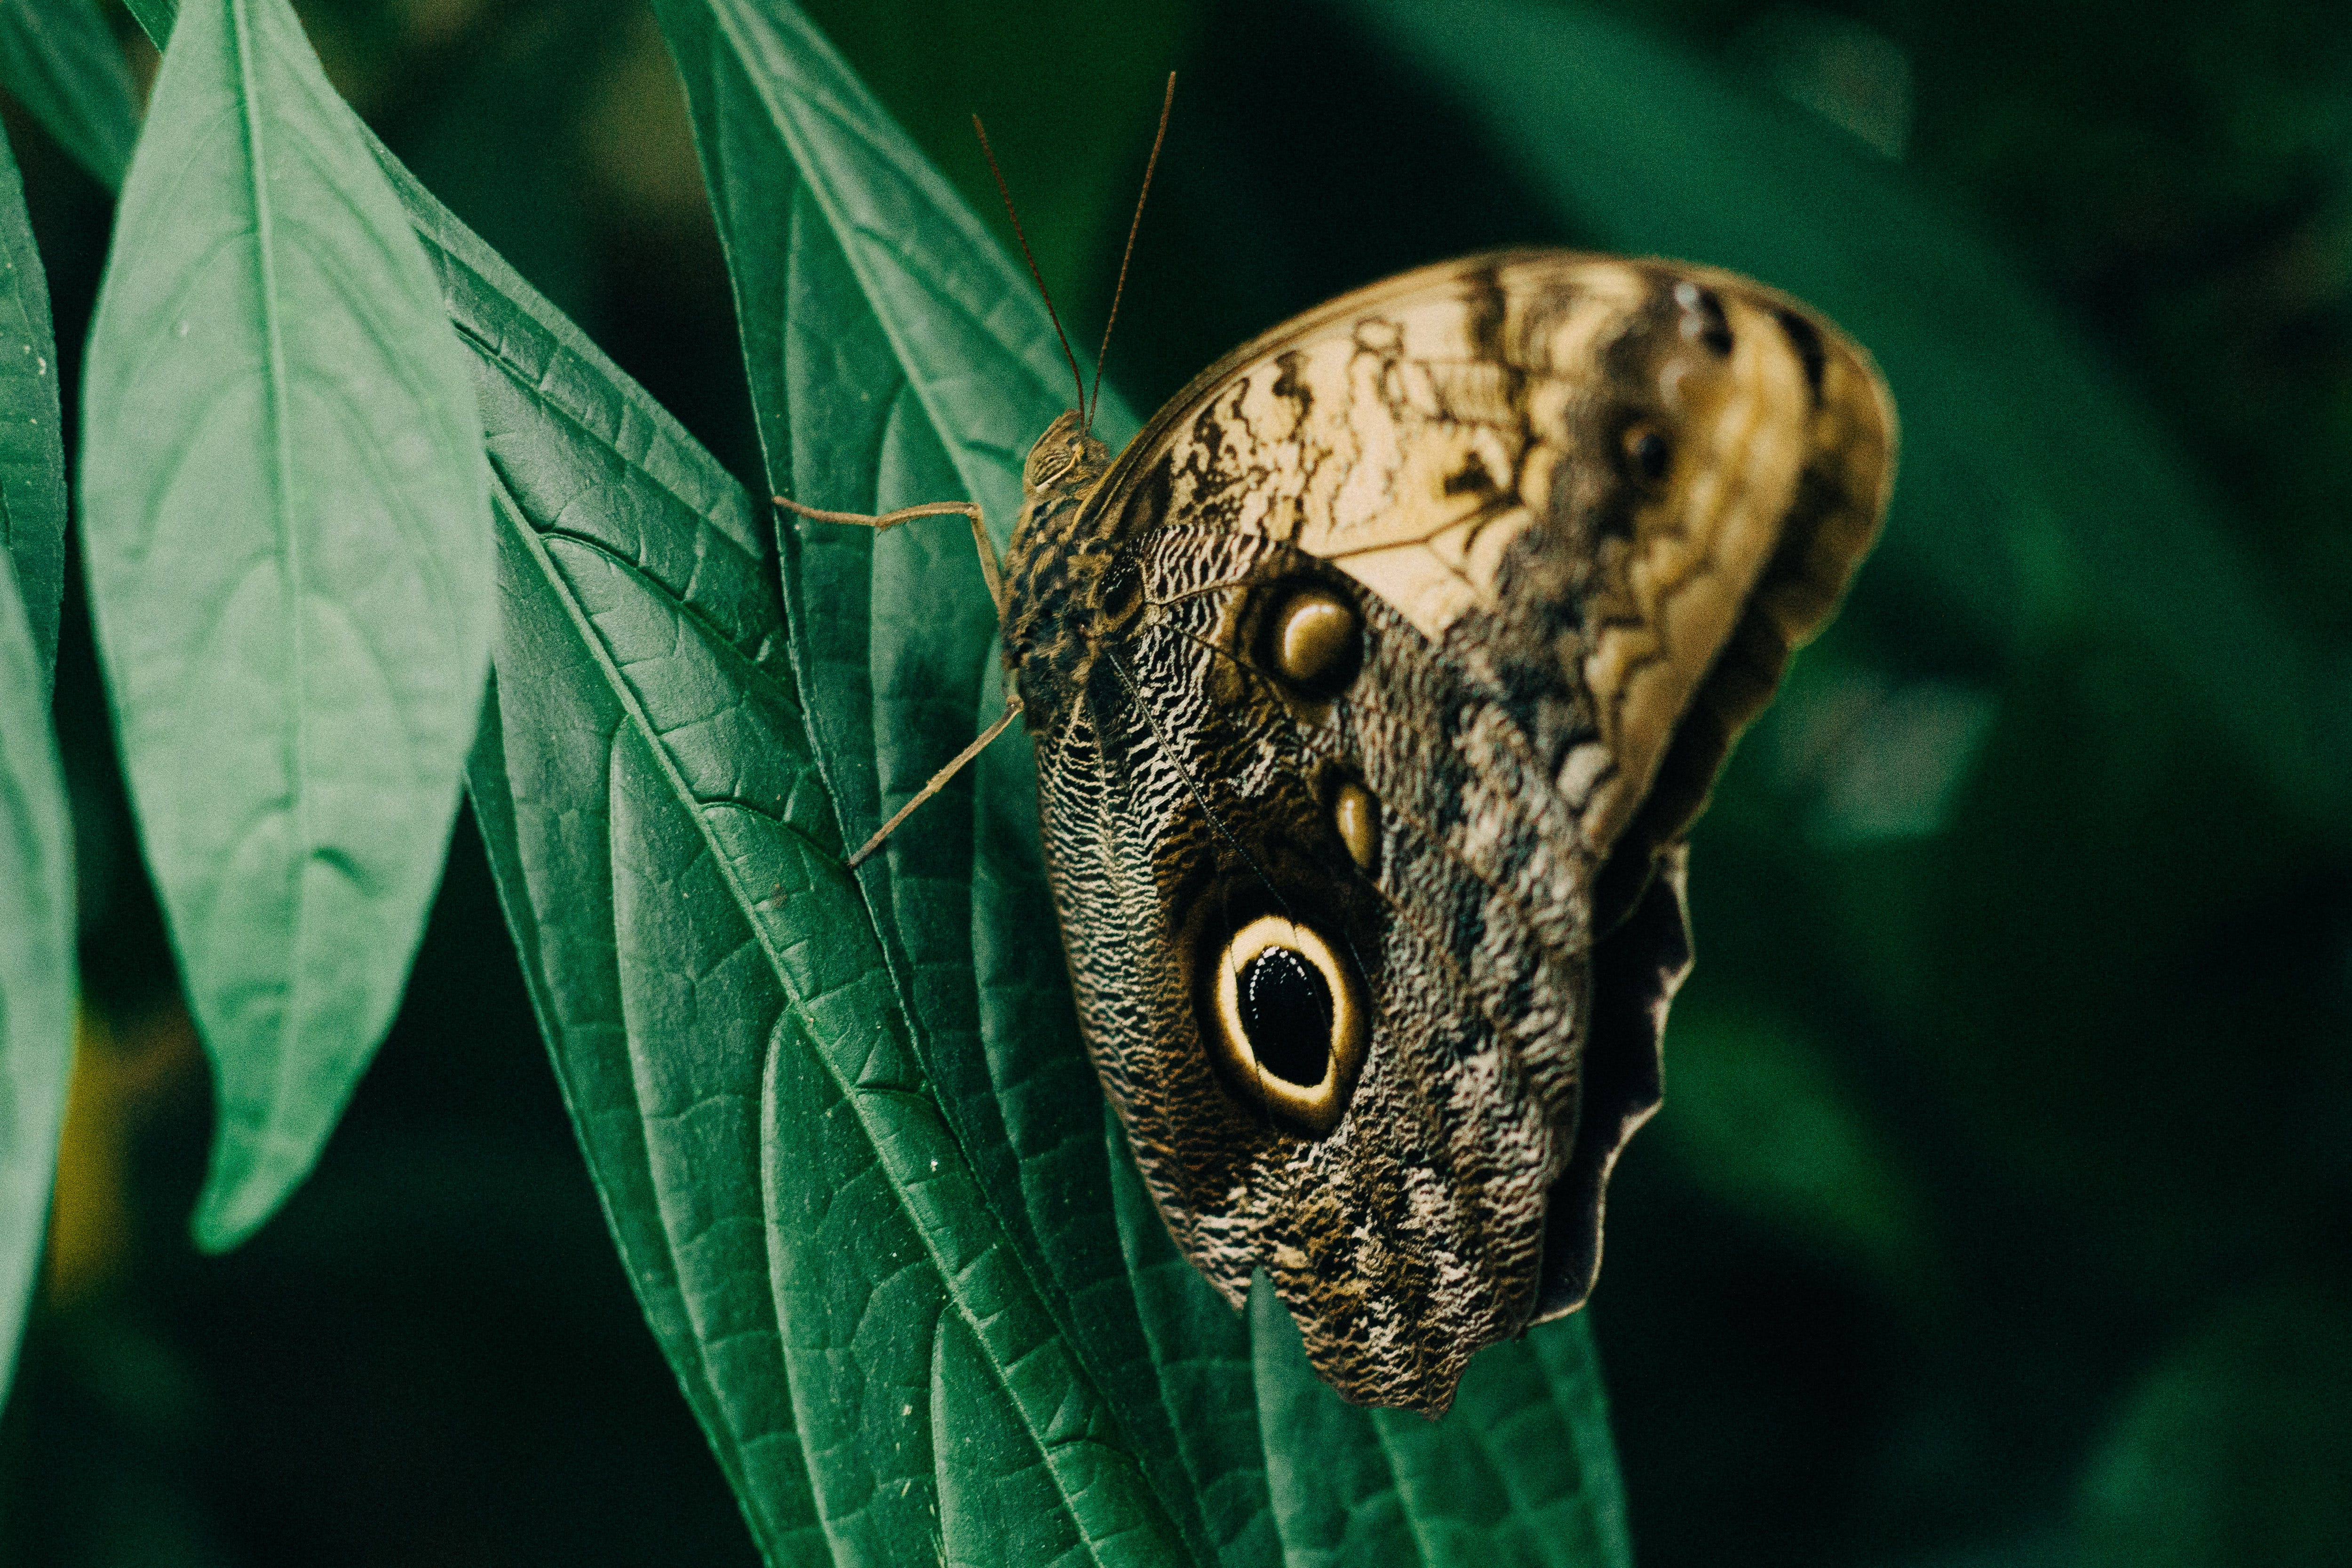 Closeup Photography of Owl Butterfly Perched on Green Leaf